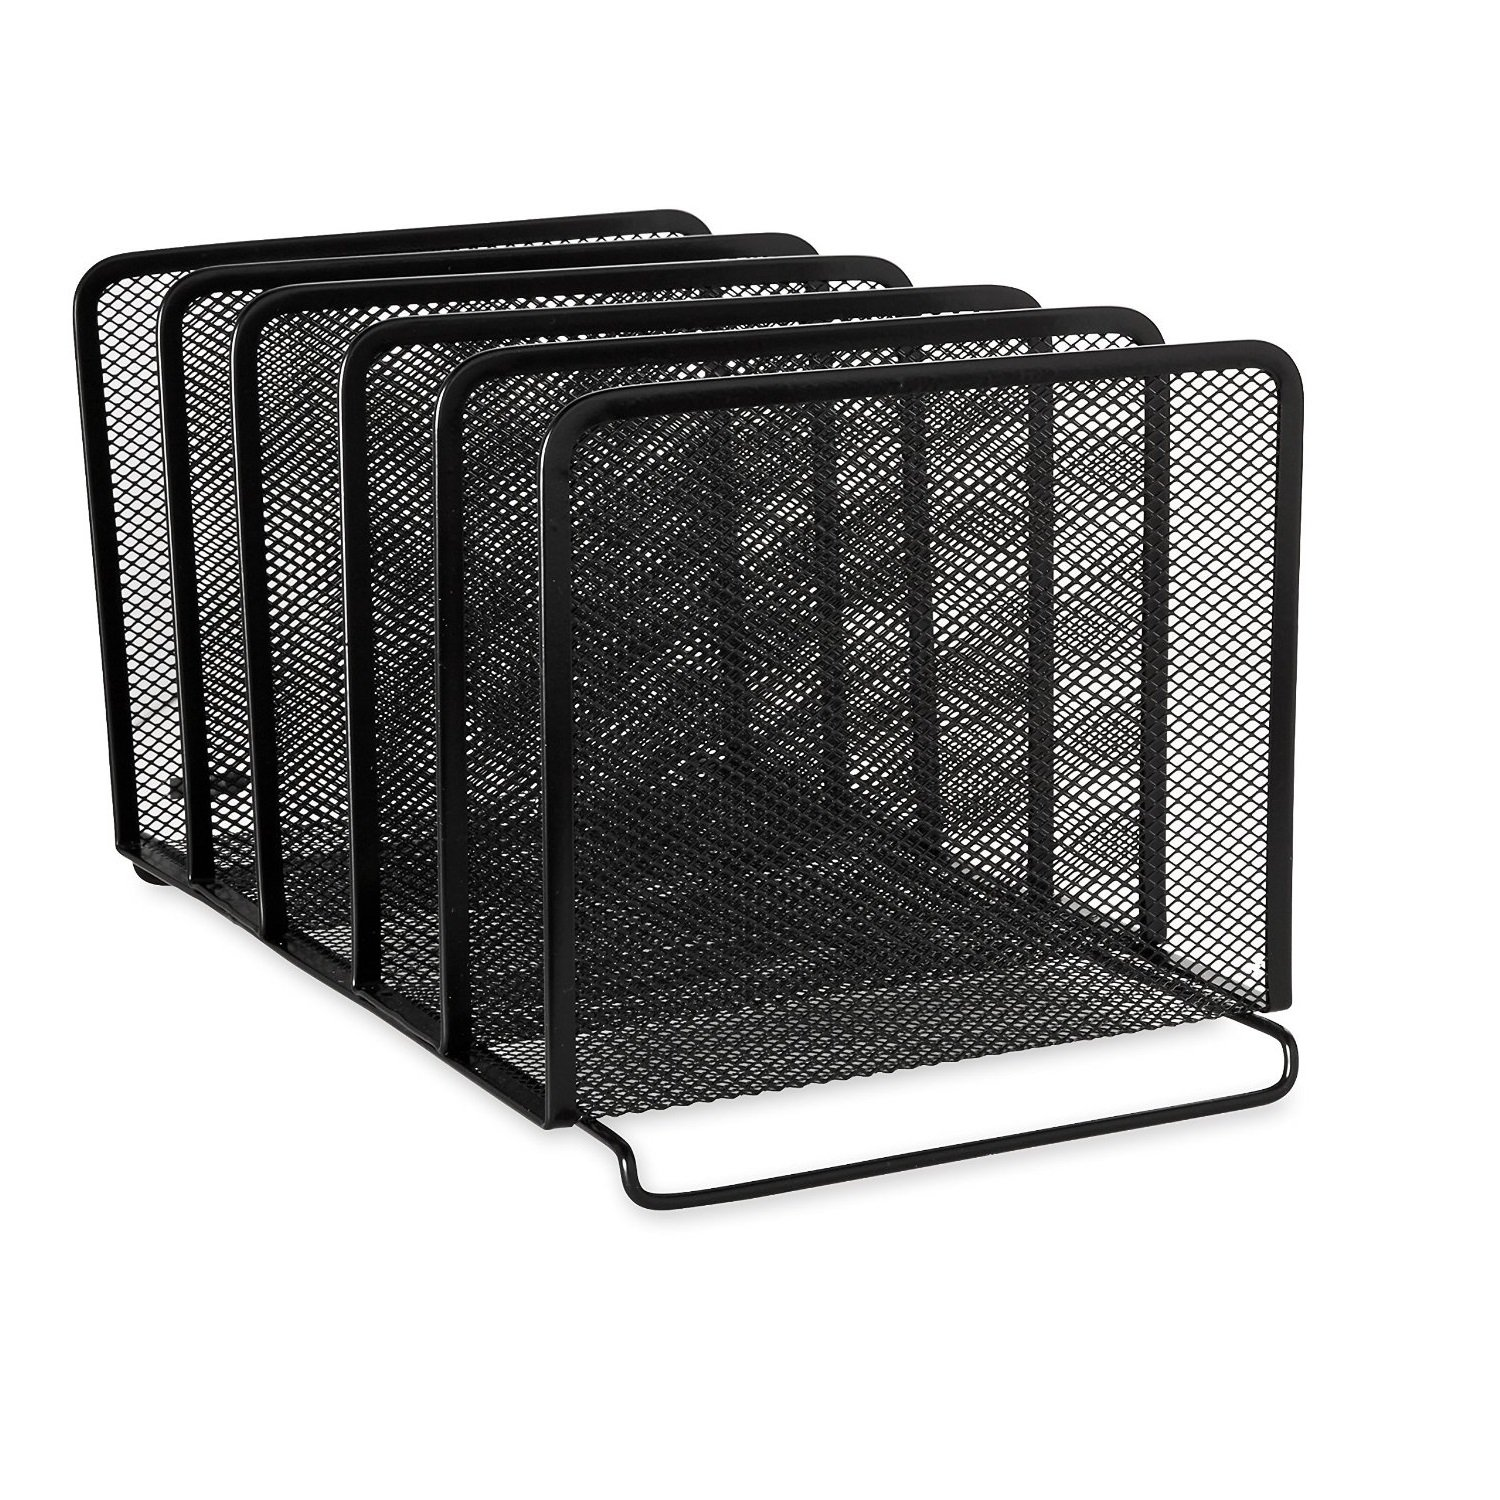 Rolodex Mesh Collection Stacking Sorter, 5-Section, Black (22141) (3, Black)